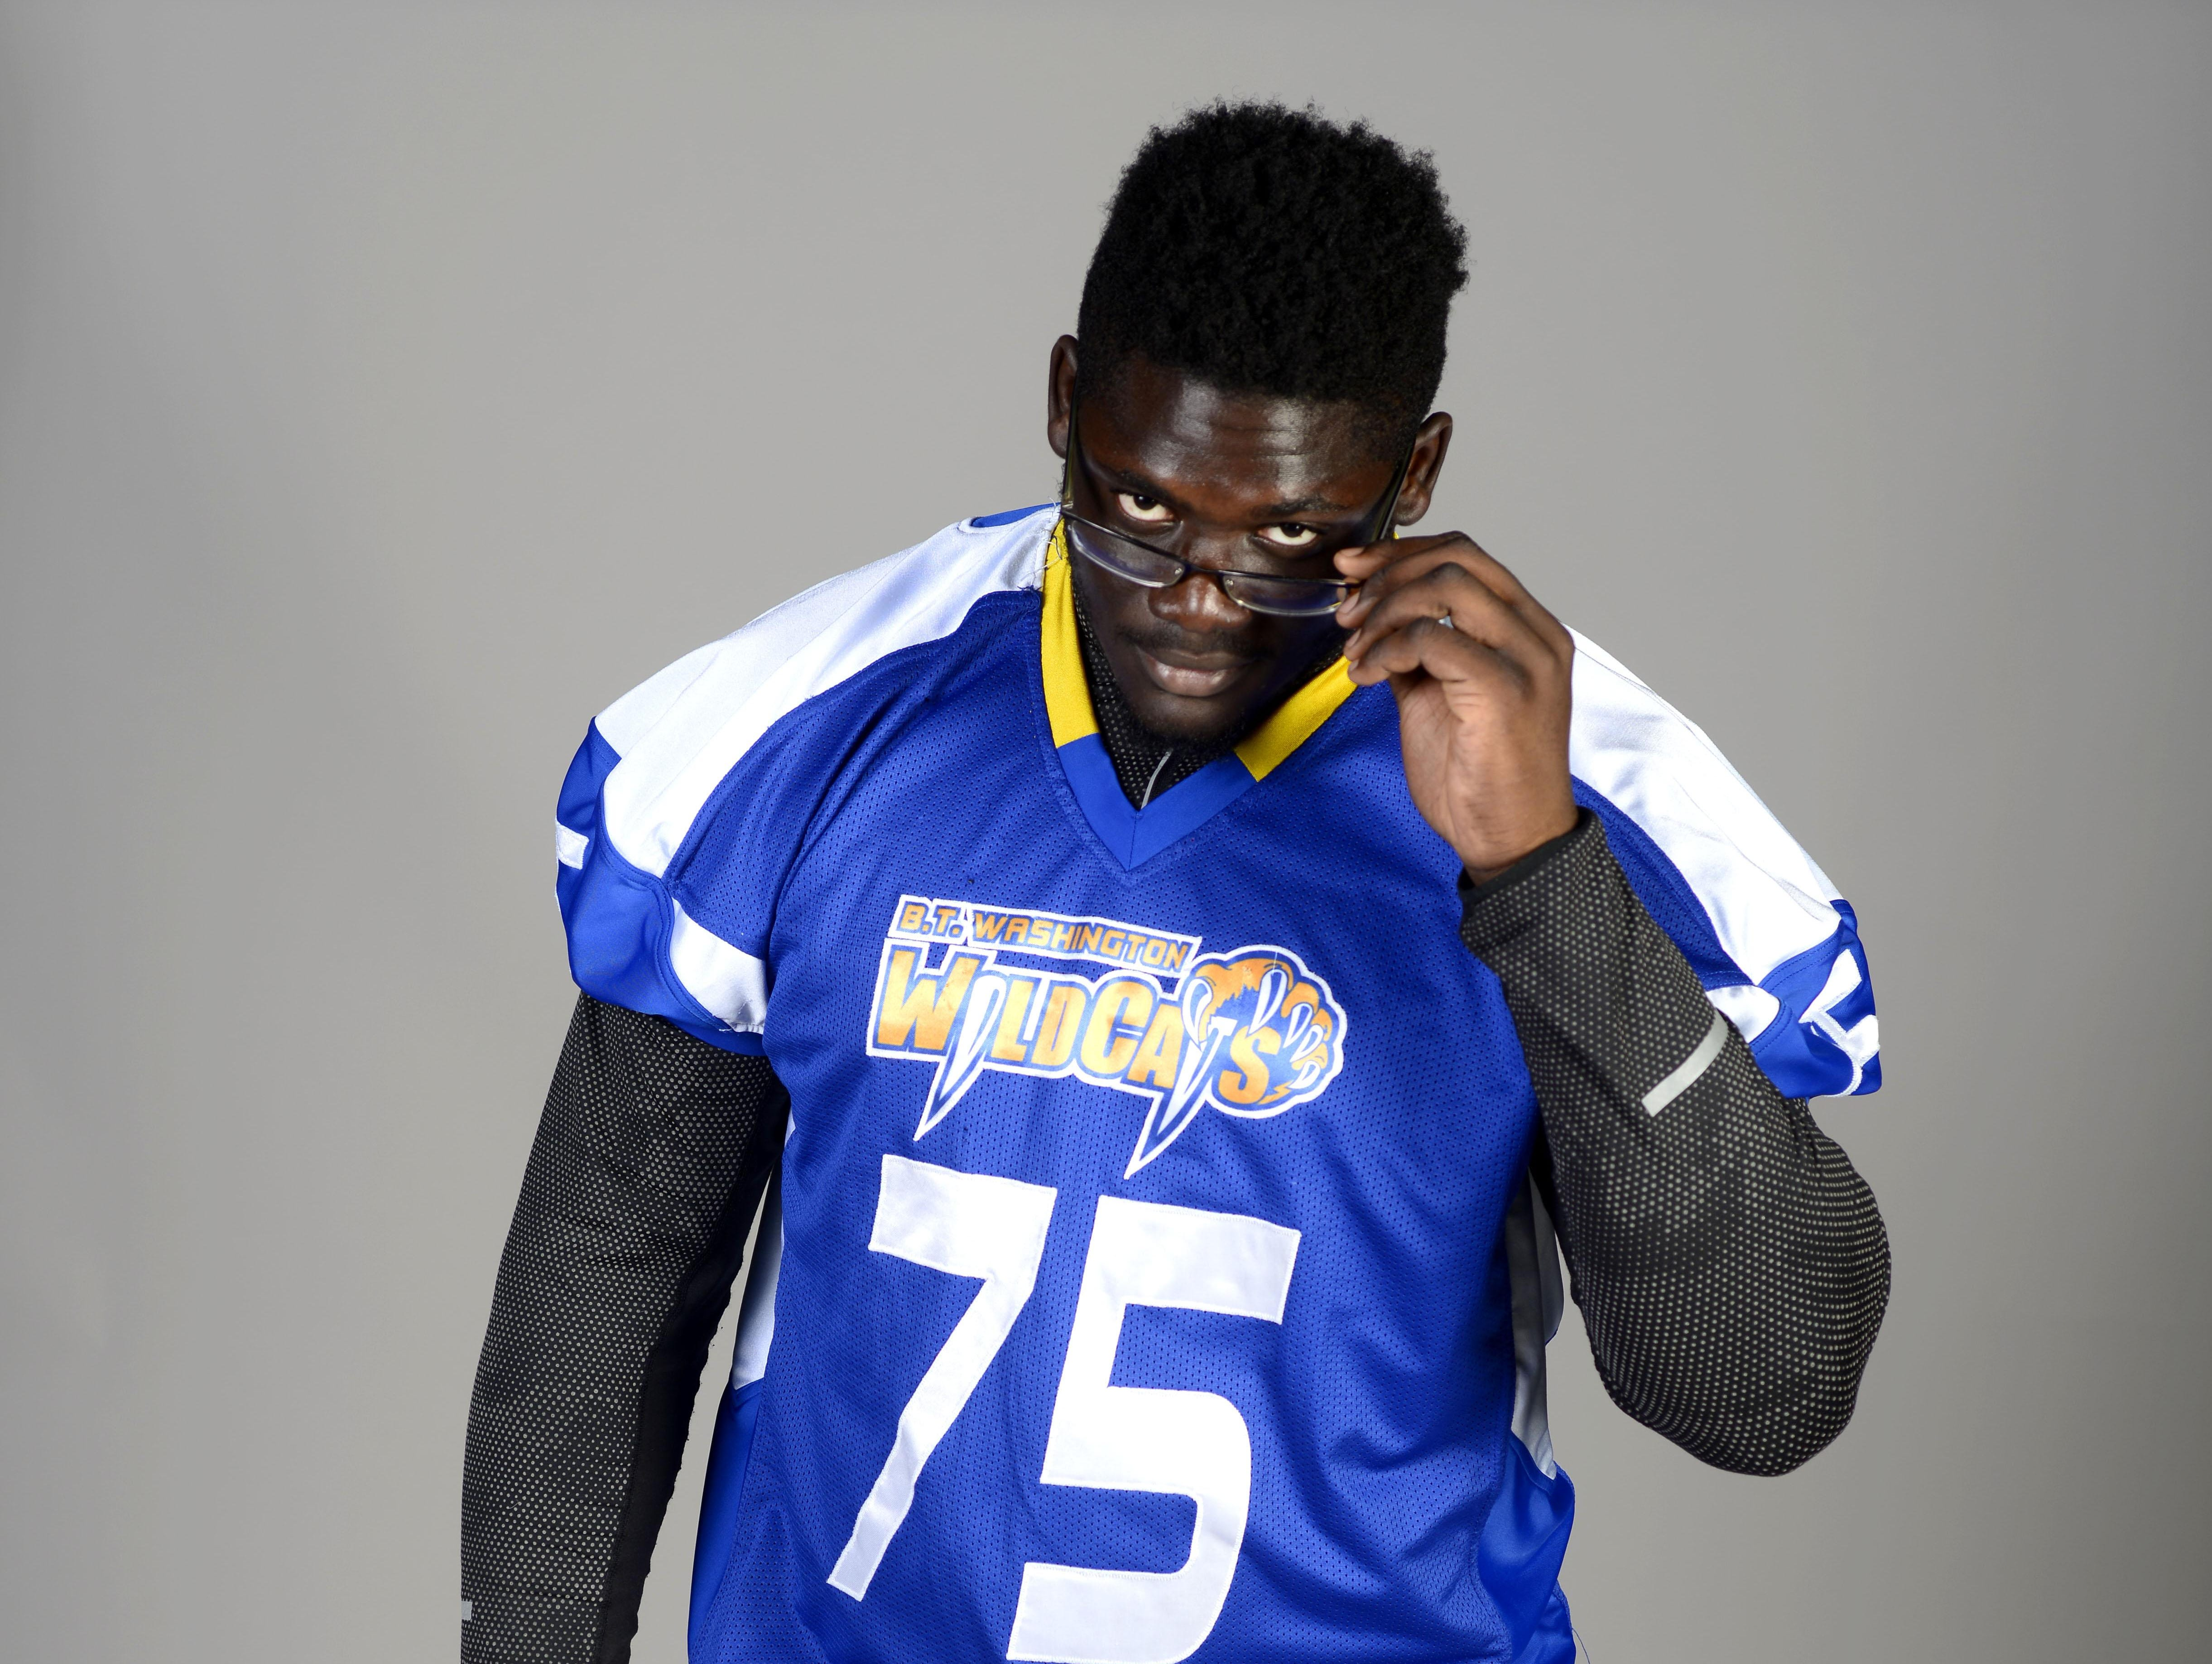 Washington High's Alex Leatherwood will be representing the Wildcats at The Opening at the Nike World Headquarters in Beaverton, Oregon. He and Navarre's Nick Brahms will be two of only 22 offensive linemen invited to the prestigious event.